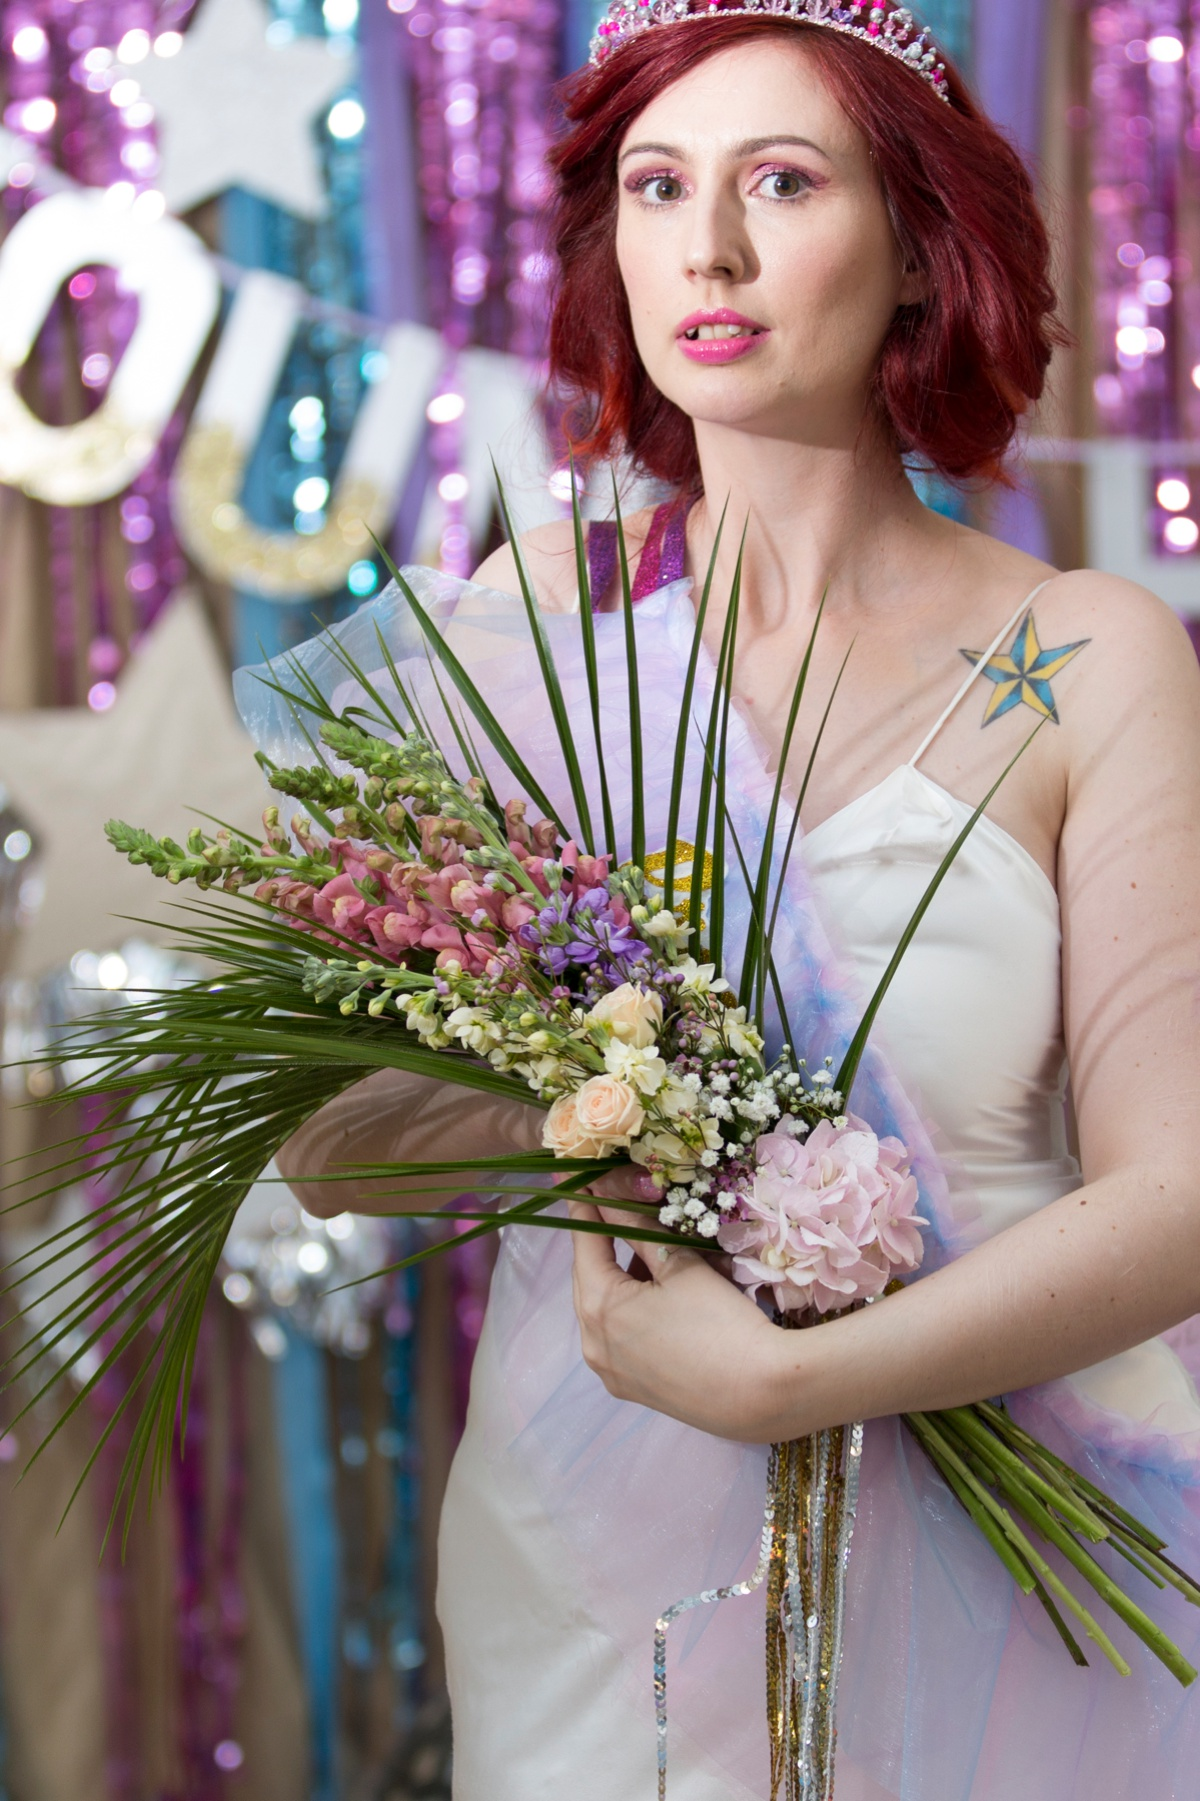 Bohotanical alternative modern wedding flowers 00003.jpg